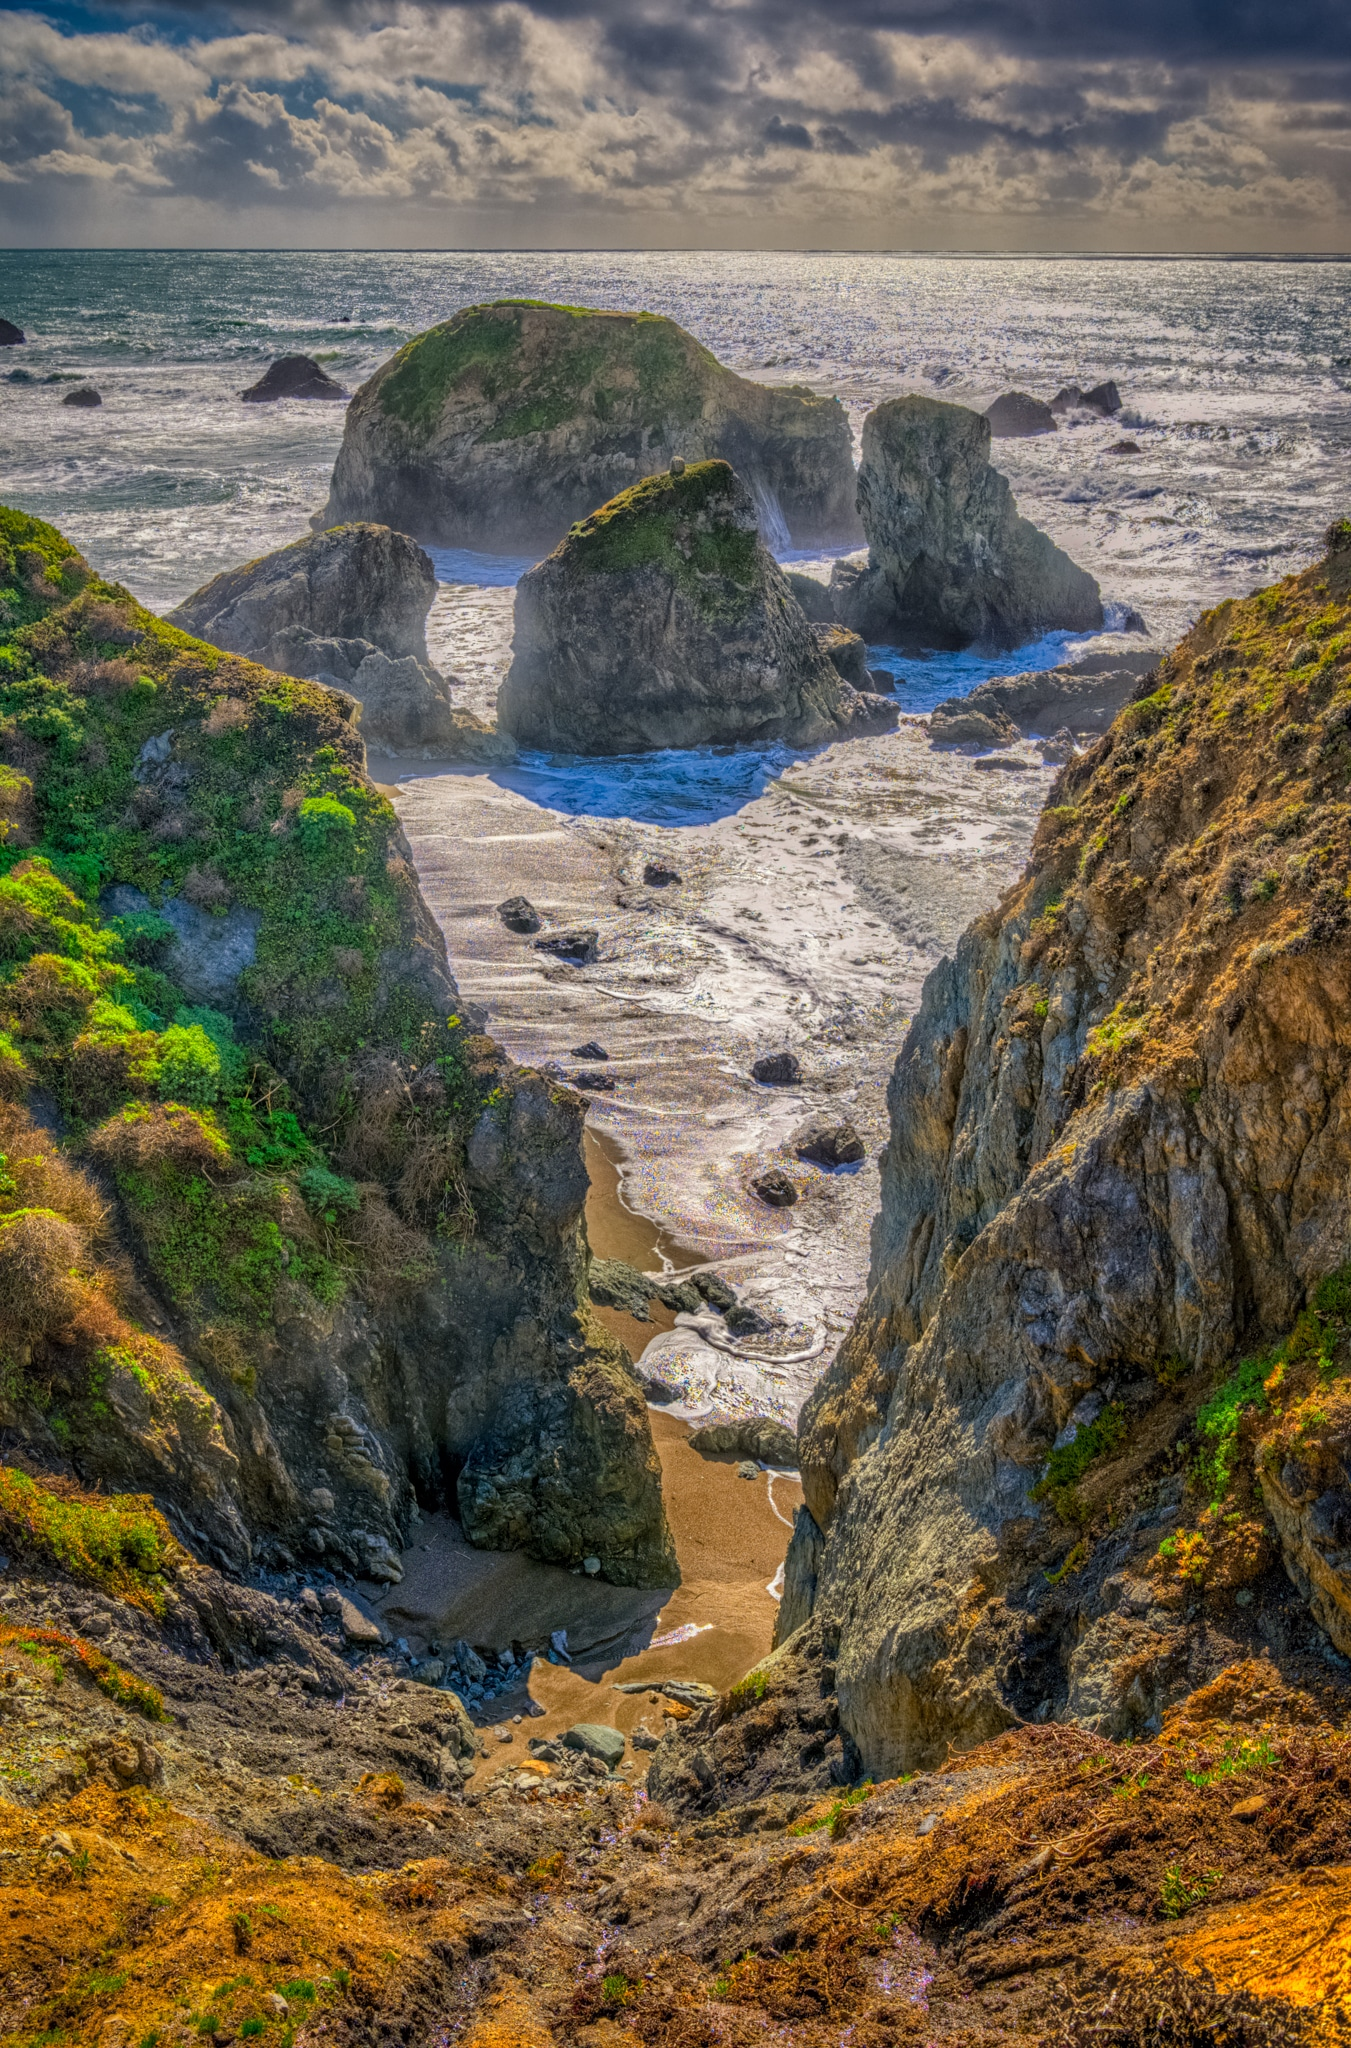 Sea Stacks and boulder add drama to the coastline along Duncan's Landing, off CA Highway 1 between Bodega Bay and Jenner, California.